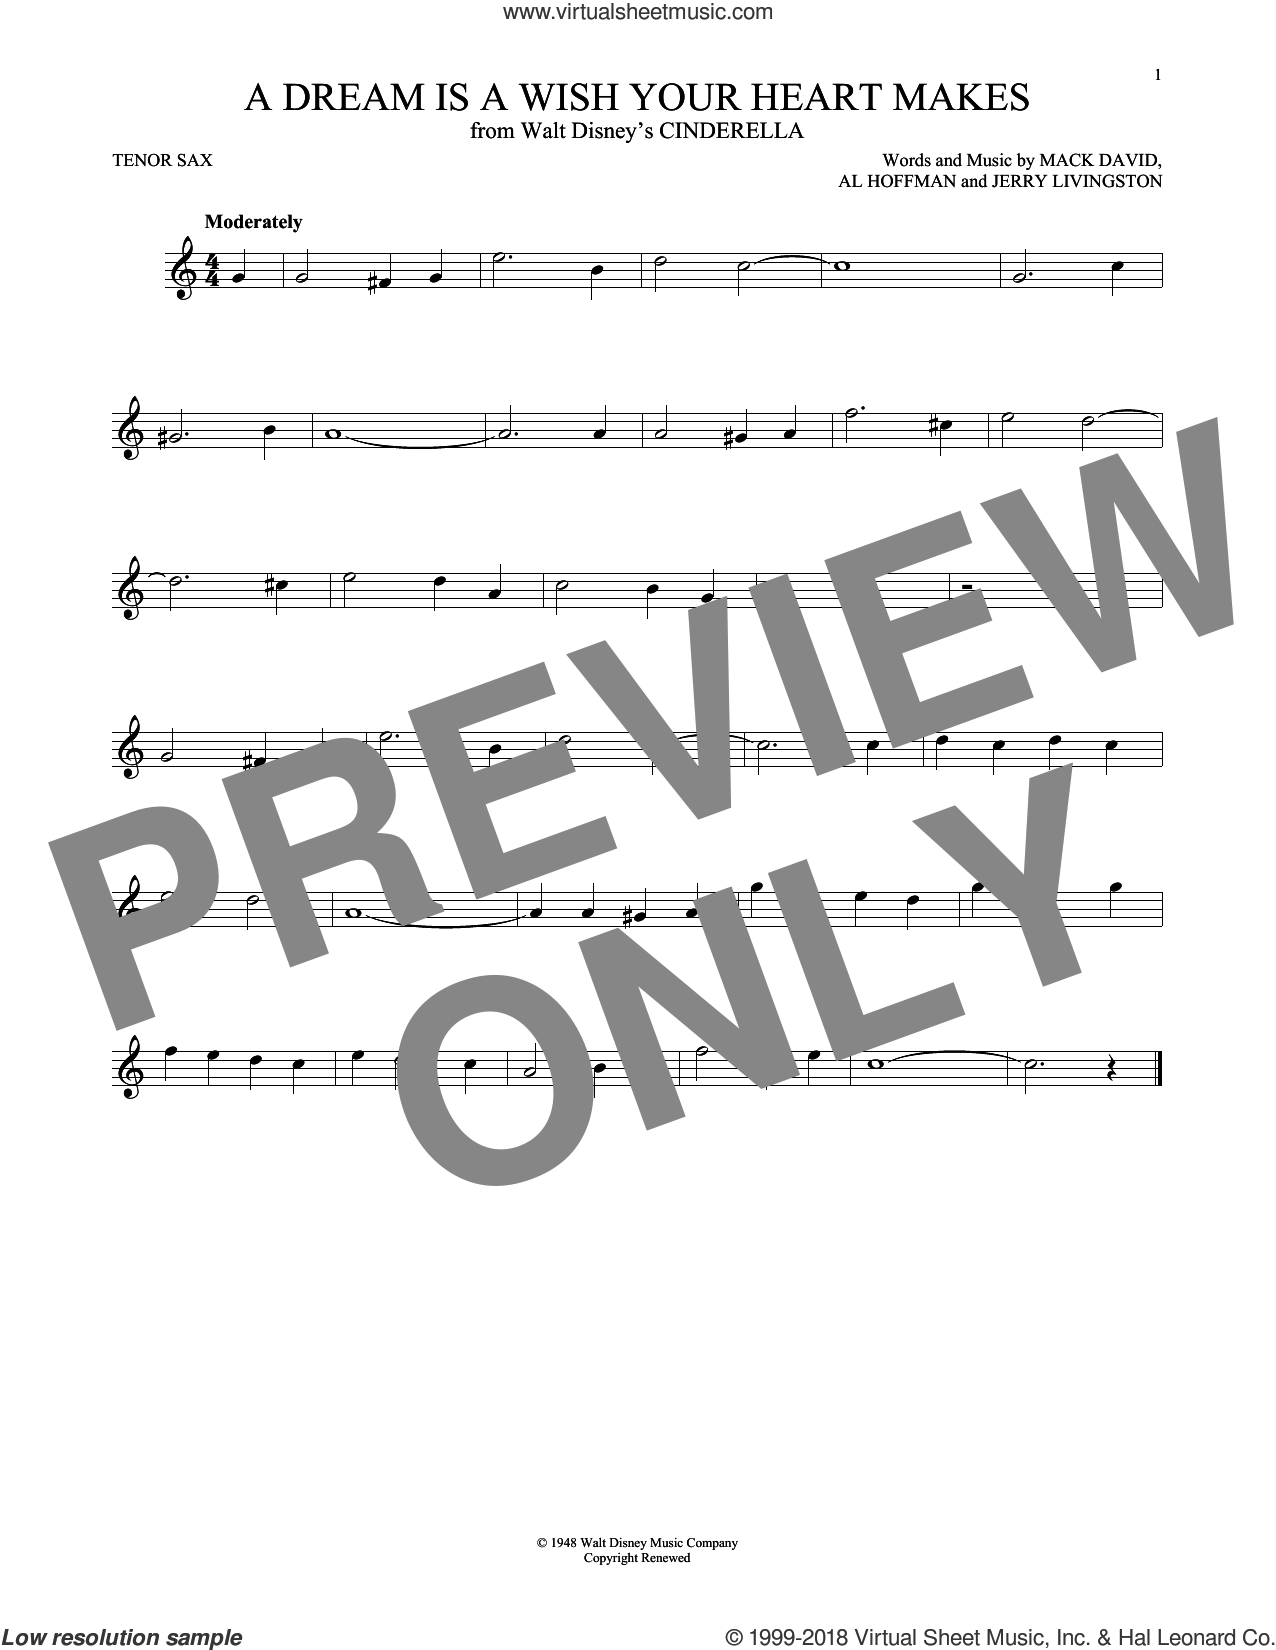 A Dream Is A Wish Your Heart Makes sheet music for tenor saxophone solo by Al Hoffman, Linda Ronstadt, Jerry Livingston, Mack David and Mack David, Al Hoffman and Jerry Livingston, intermediate. Score Image Preview.